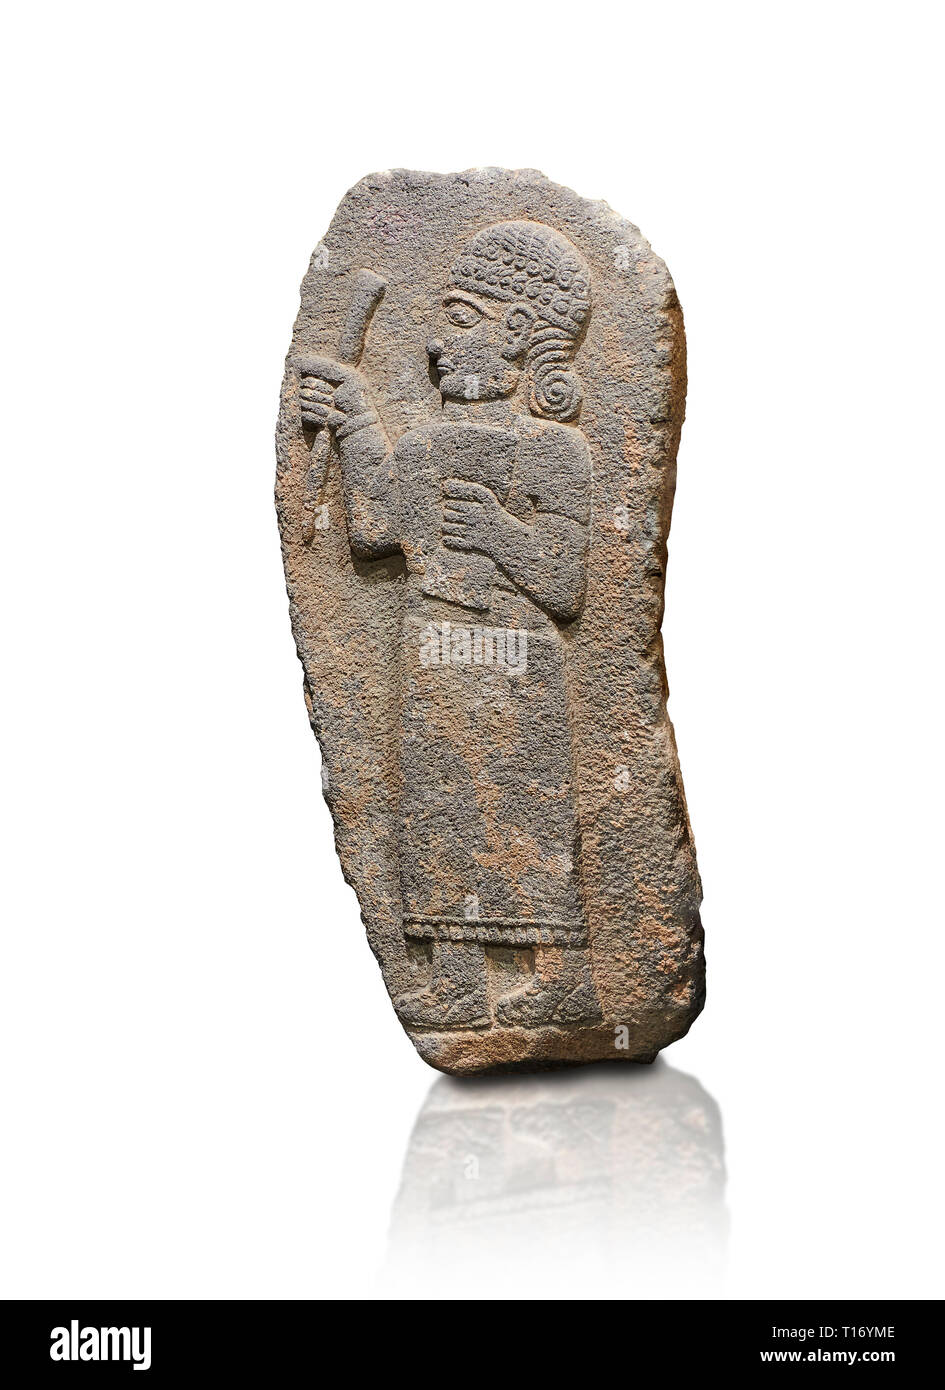 Hittite monumental relief sculpture of a figure holding a document. Adana Archaeology Museum, Turkey. Against a white background Stock Photo